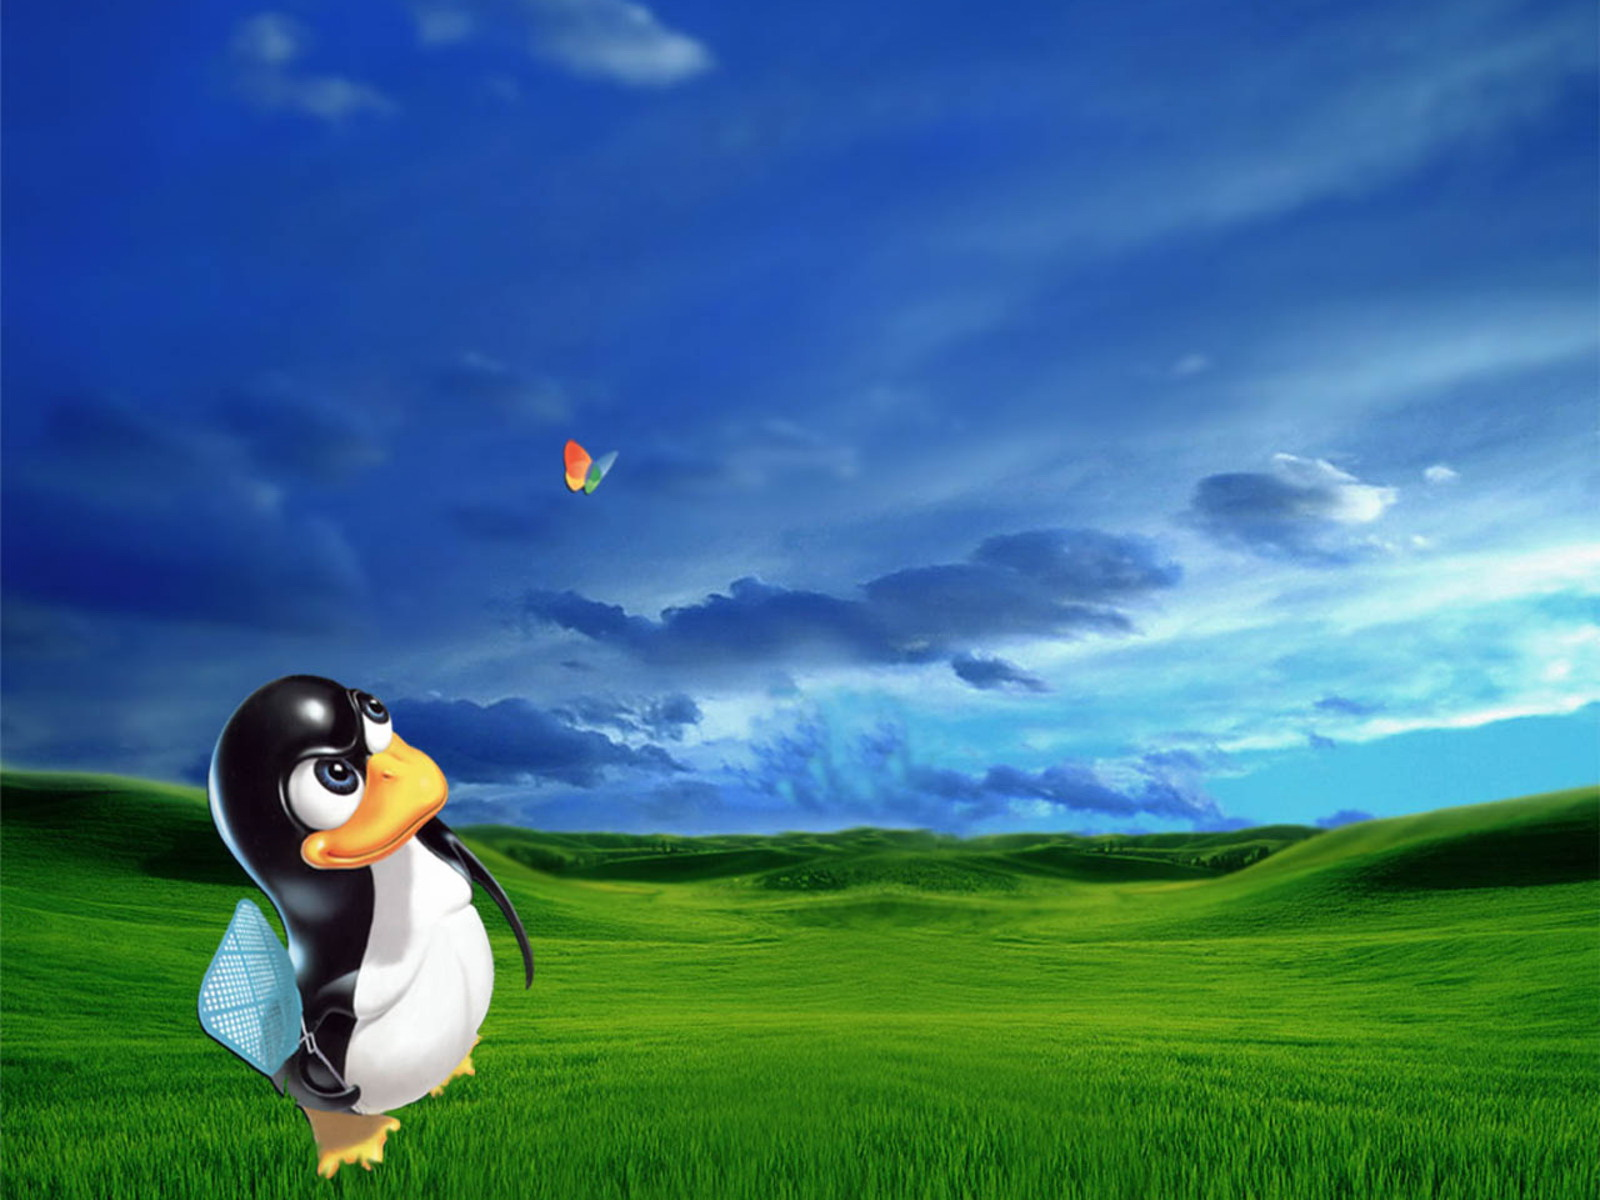 Wallpapers Linux 18159 Wallpaper Wallpaper hd 1600x1200